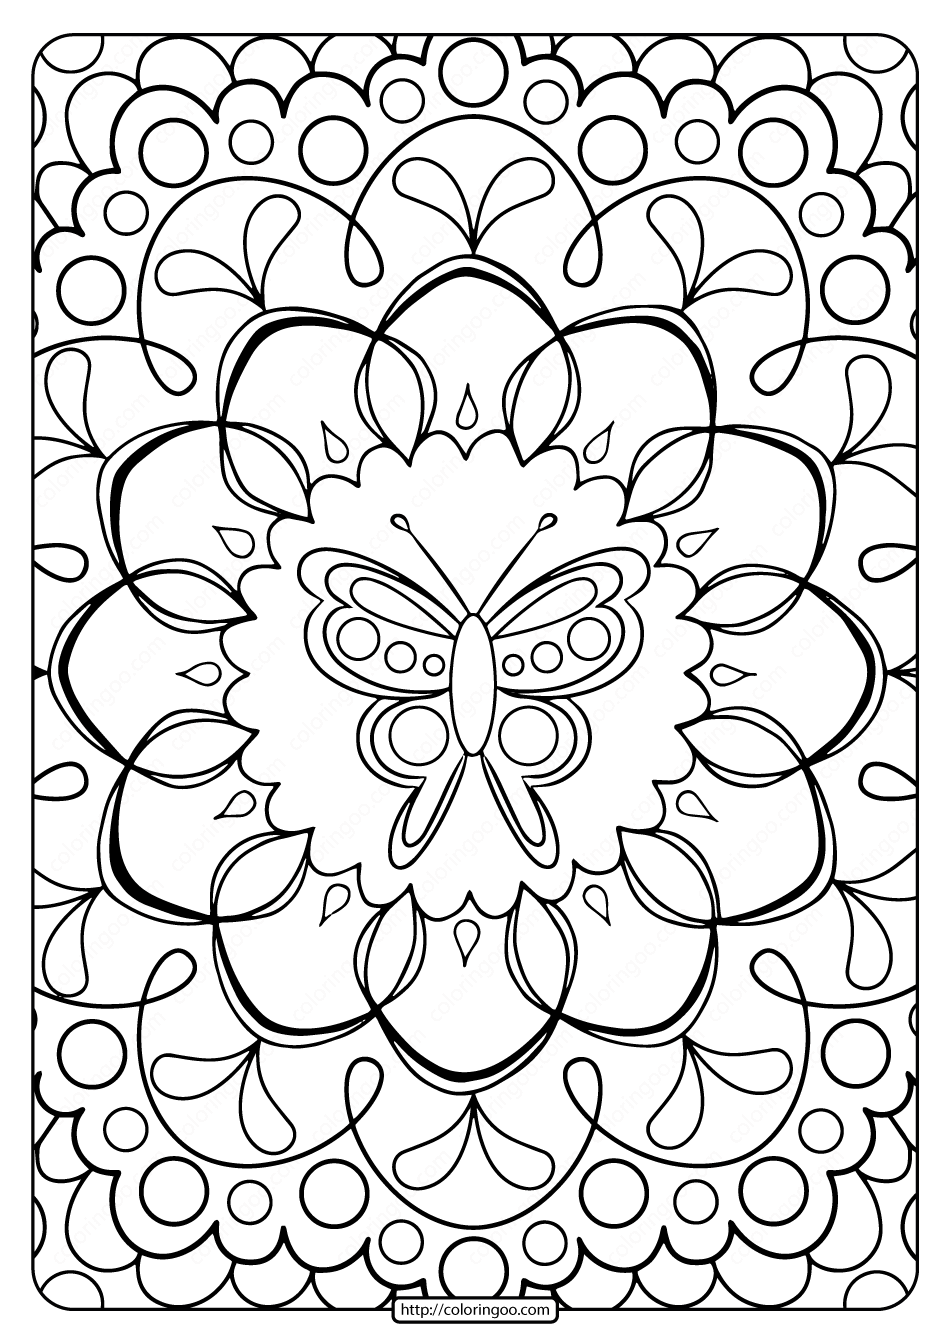 full size coloring pages free printable butterfly adult coloring pages size full pages coloring